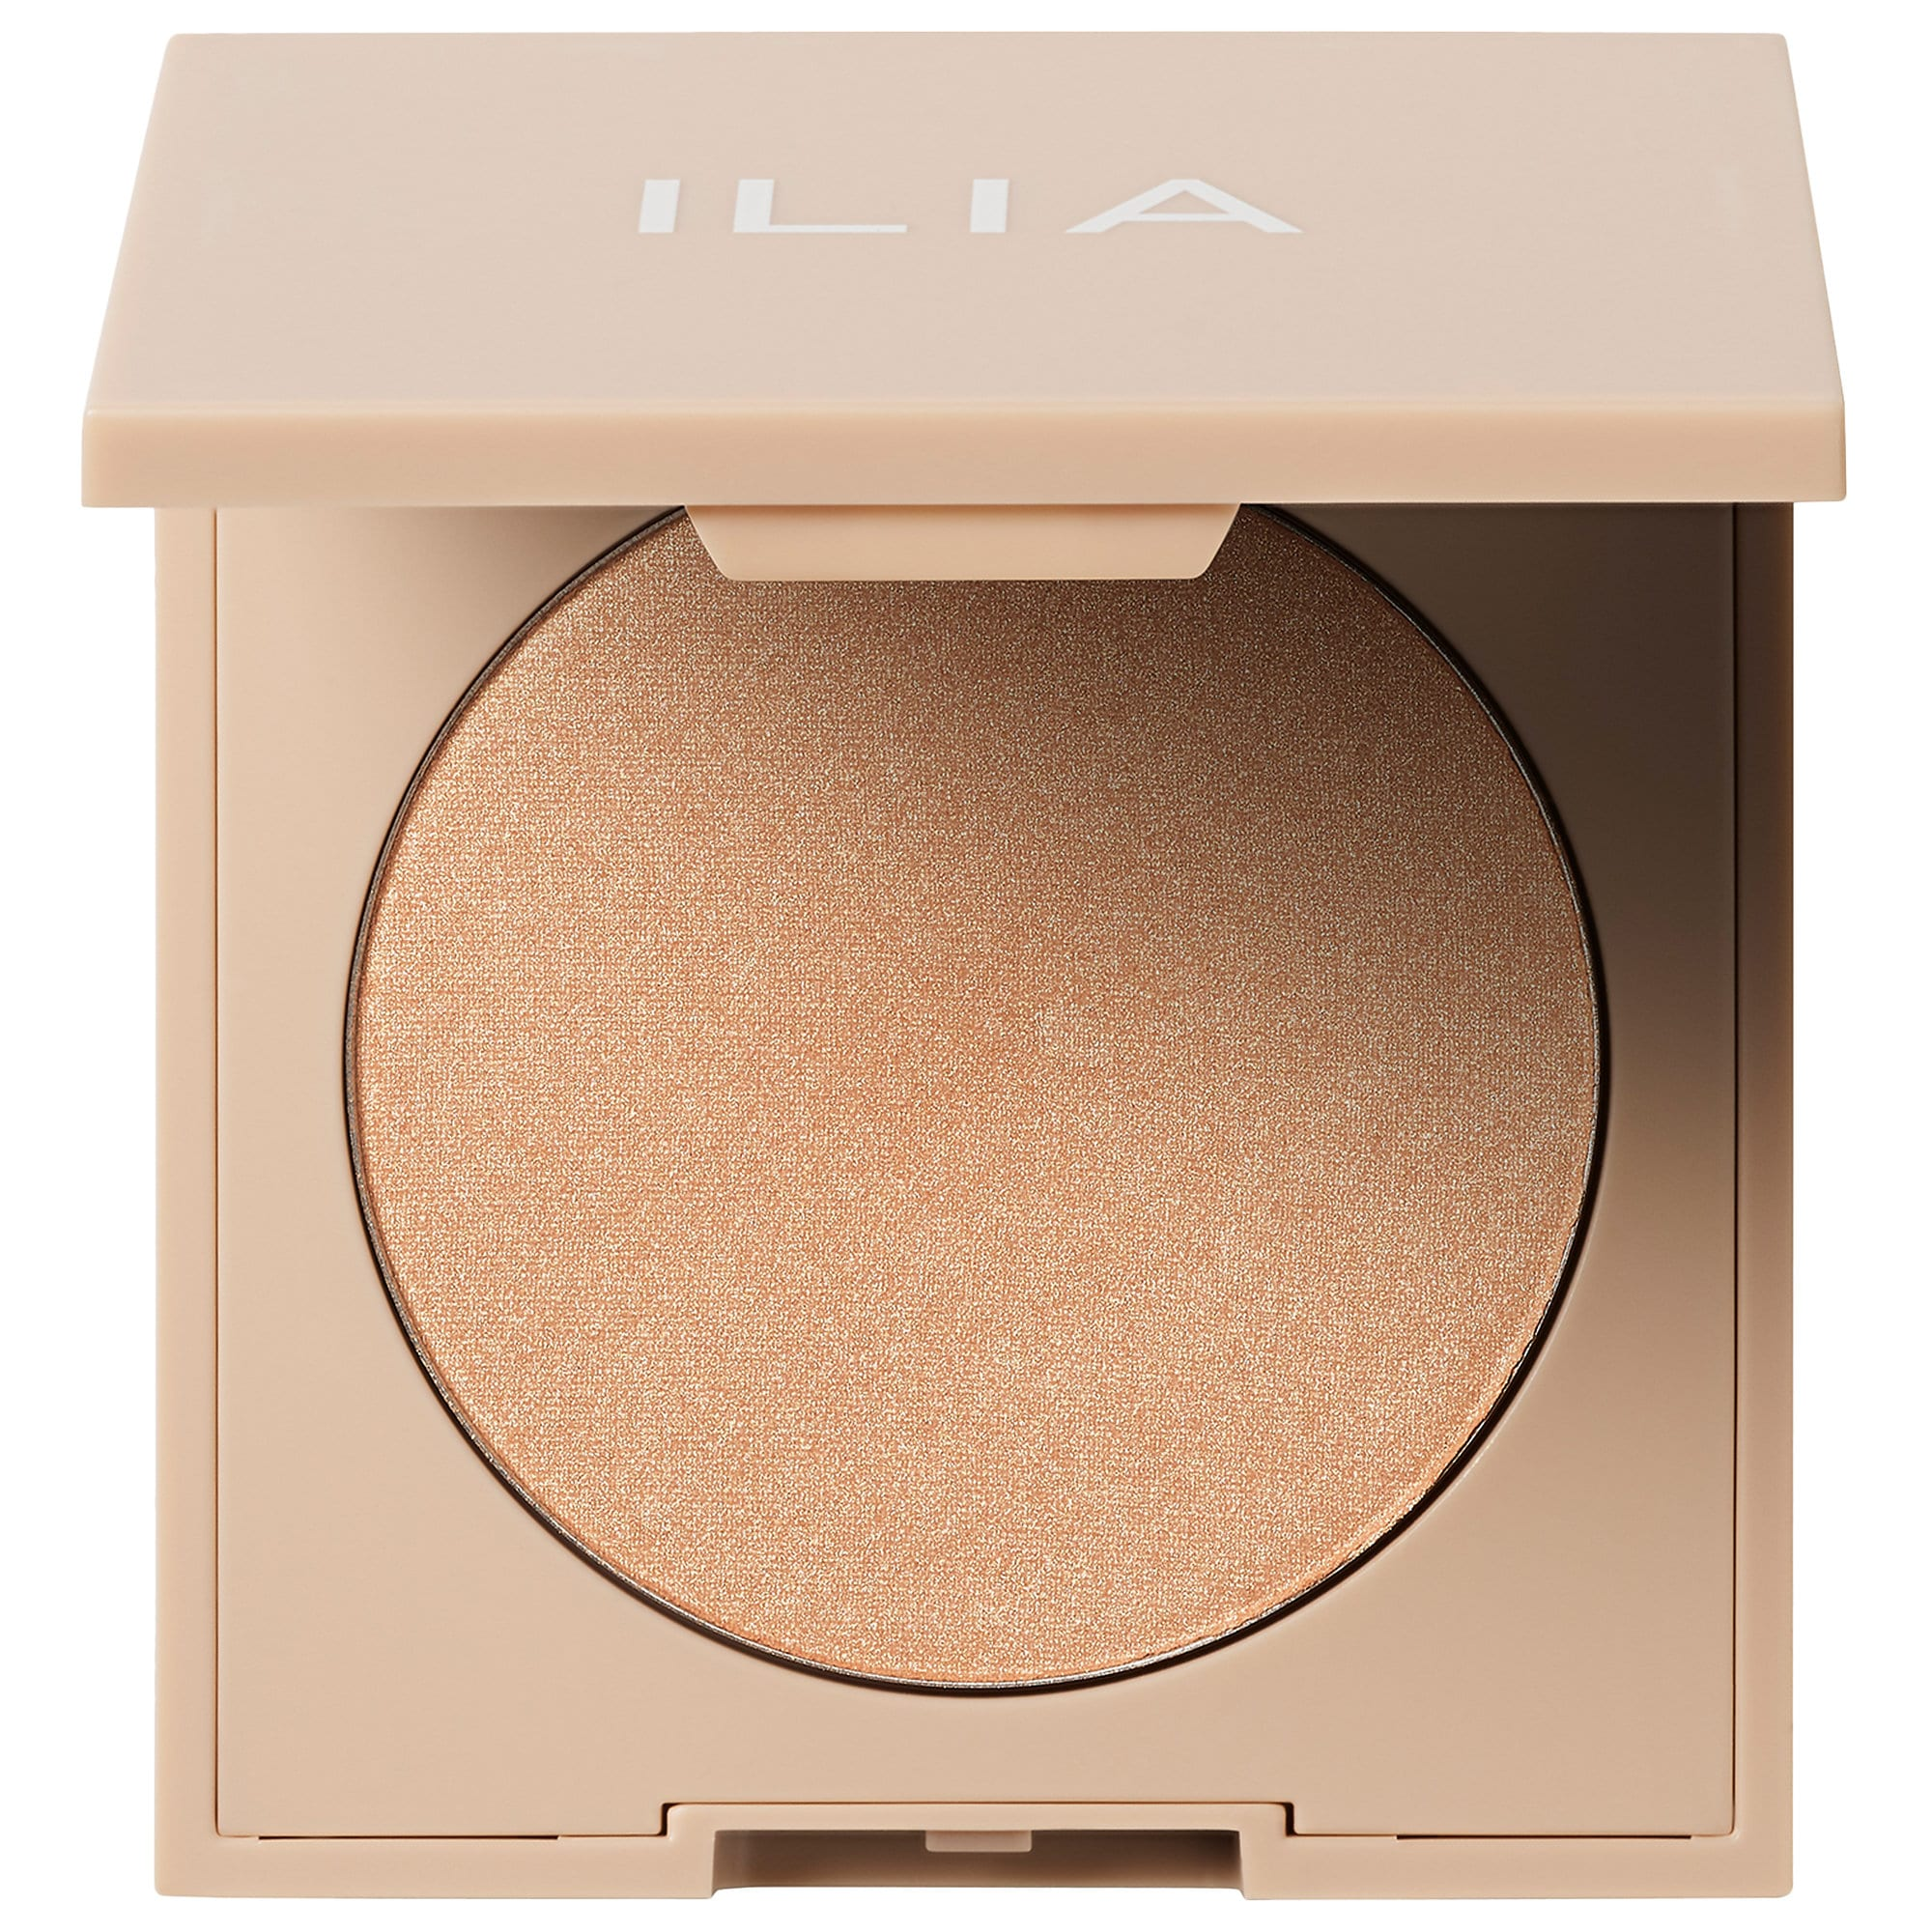 ILIA - DayLite Highlighter Powder